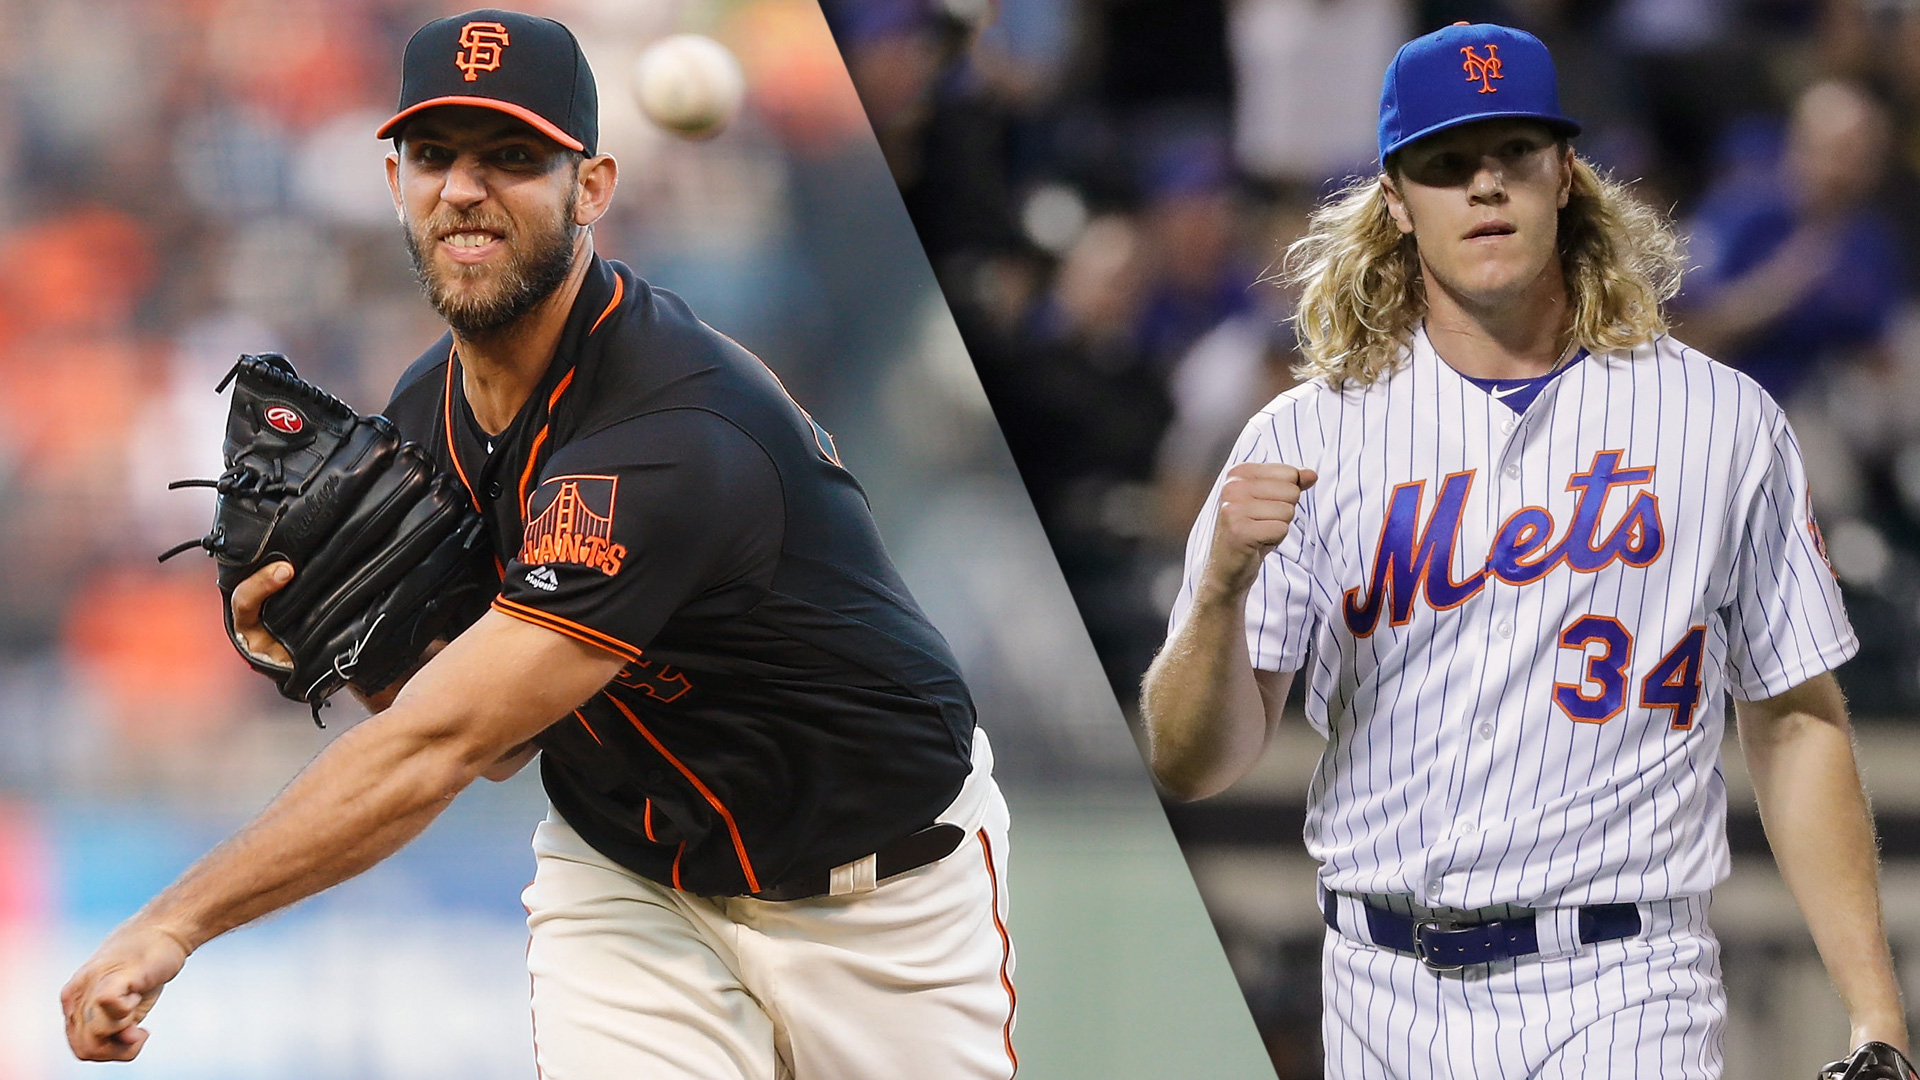 Split-madison-bumgarner-noah-syndergaard-100316-getty-ftrjpg_1pqom94uww3lm11at6stnw8nx0